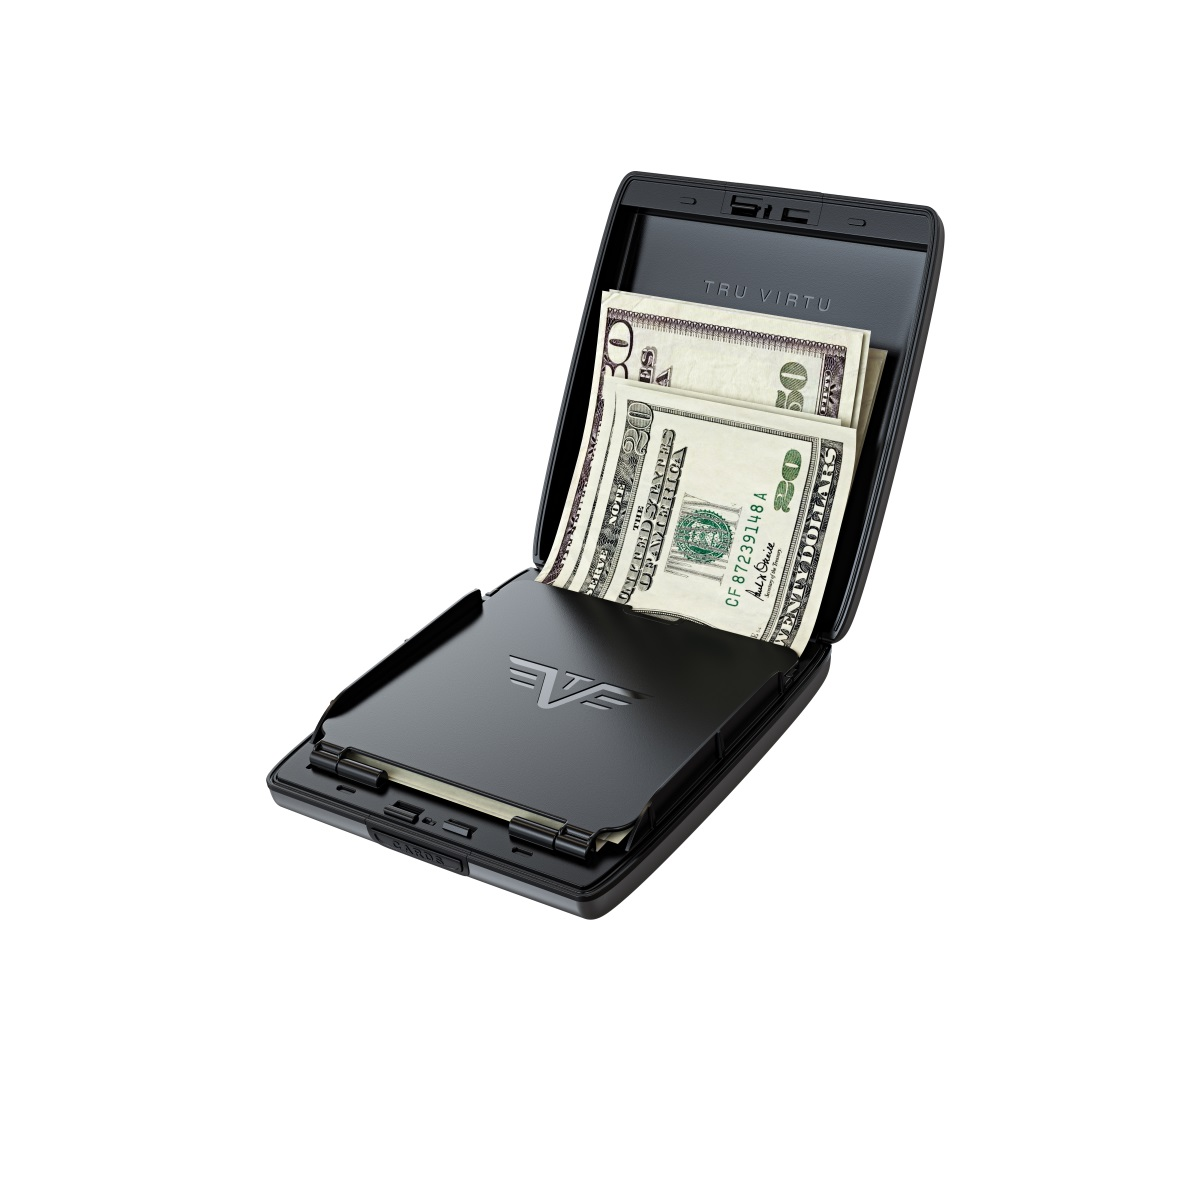 TRU VIRTU Aluminum Wallet Beluga - Money & Cards - Leather Line - Nappa Black